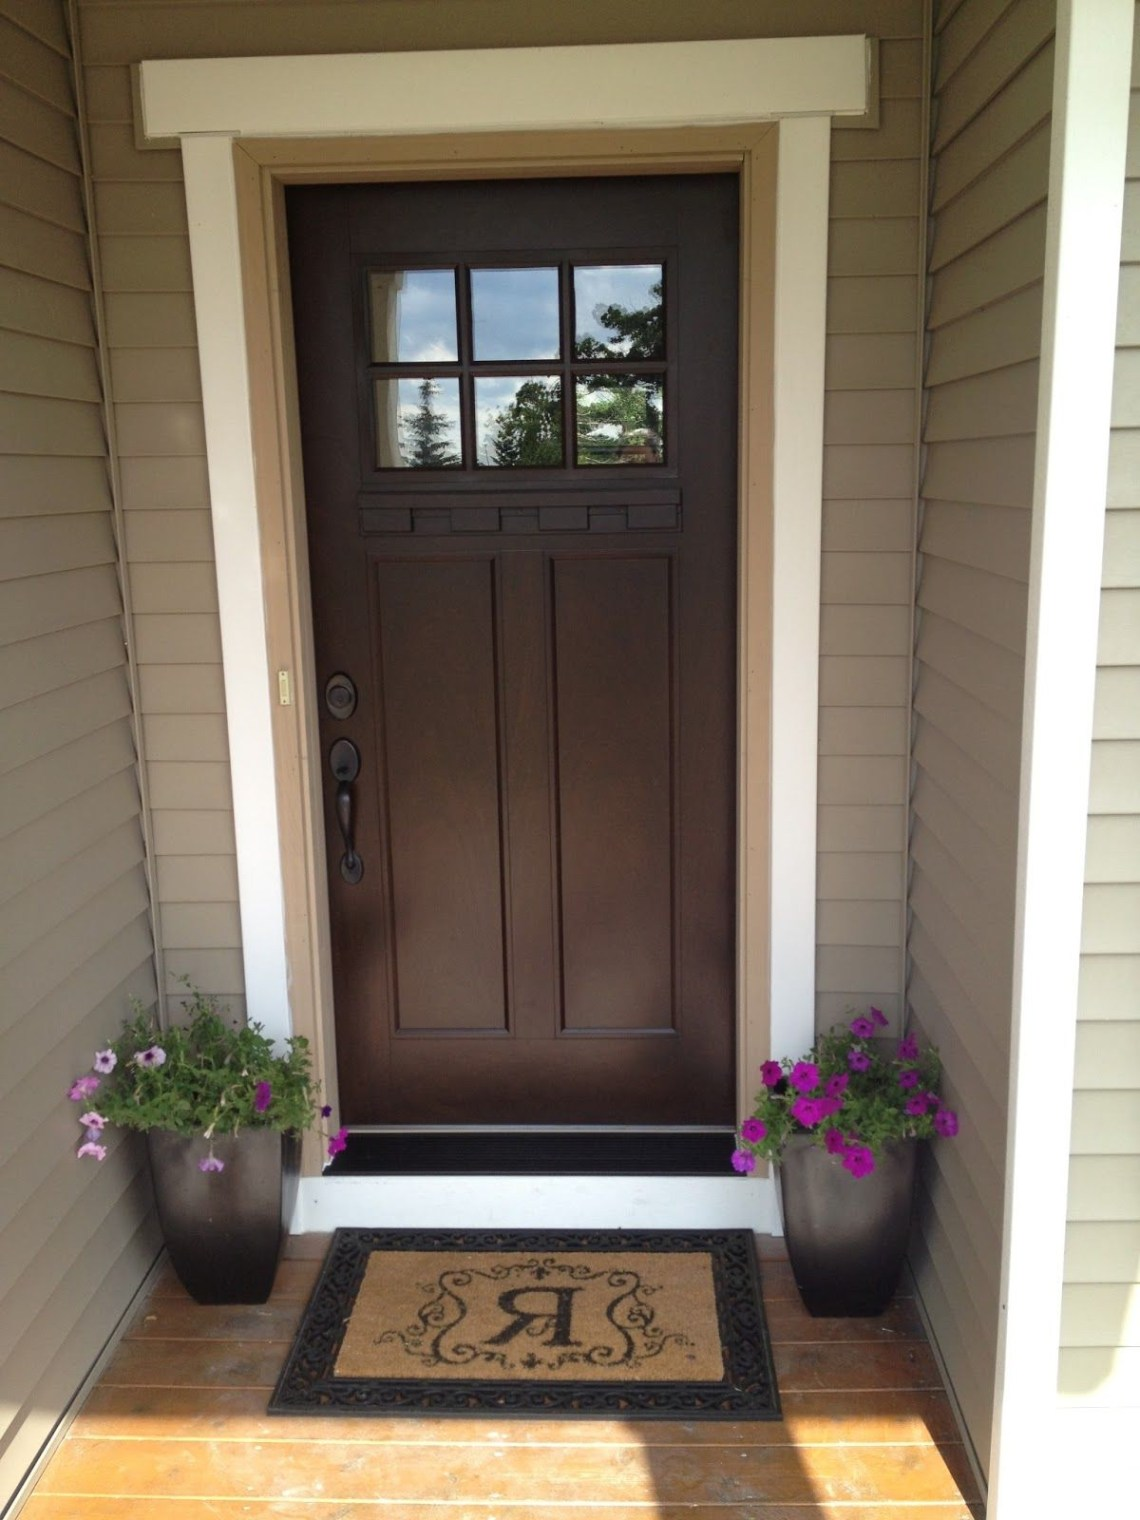 We Can Paint Our Front Door Chestnut And Then Add A New